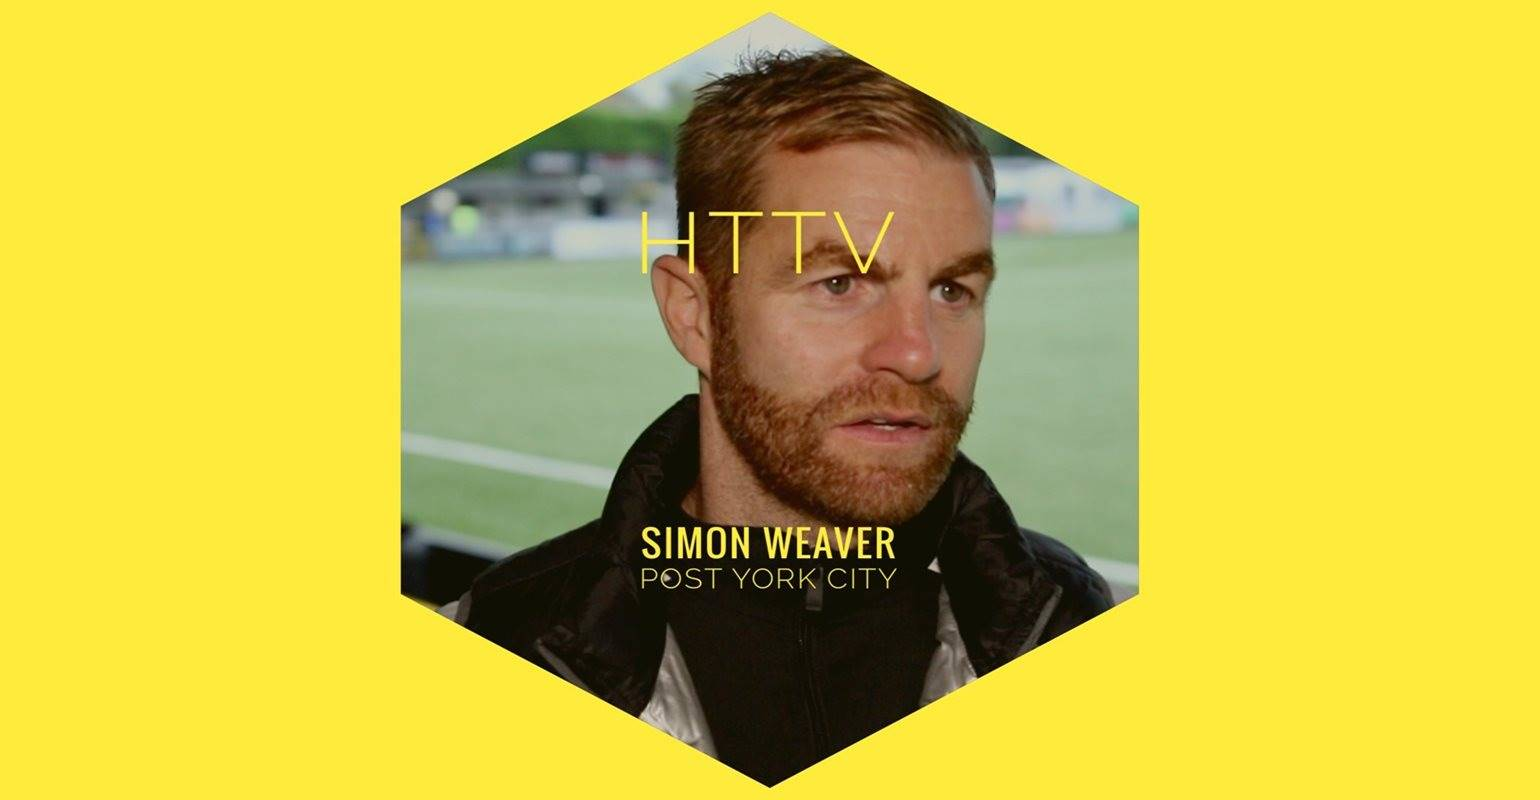 HTTV | Simon Weaver Post York City